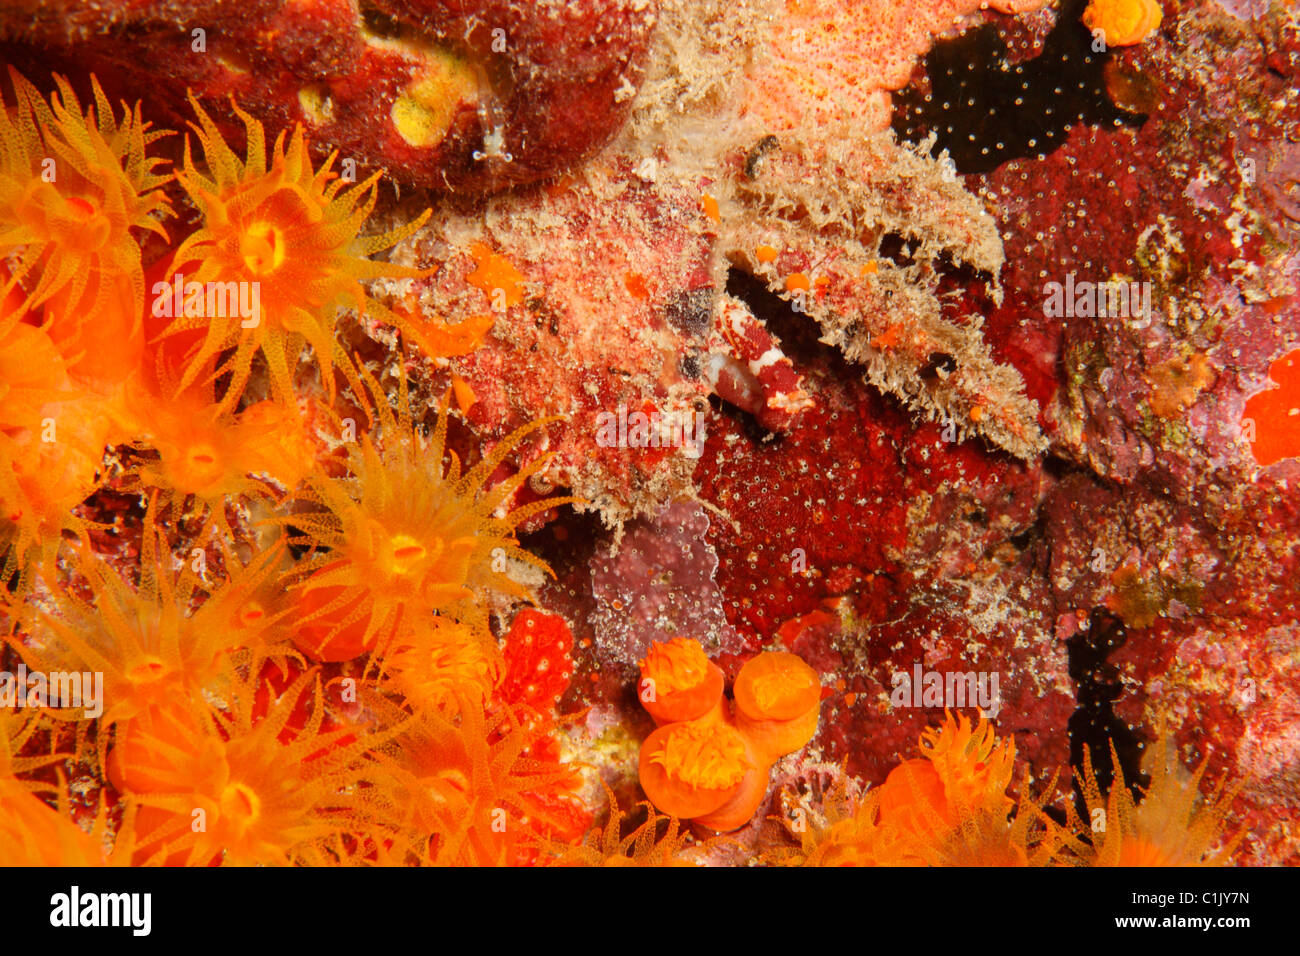 Speck-claw Decorator Crab (Microphrys bicornuta) camouflaged against corals and sponges. - Stock Image